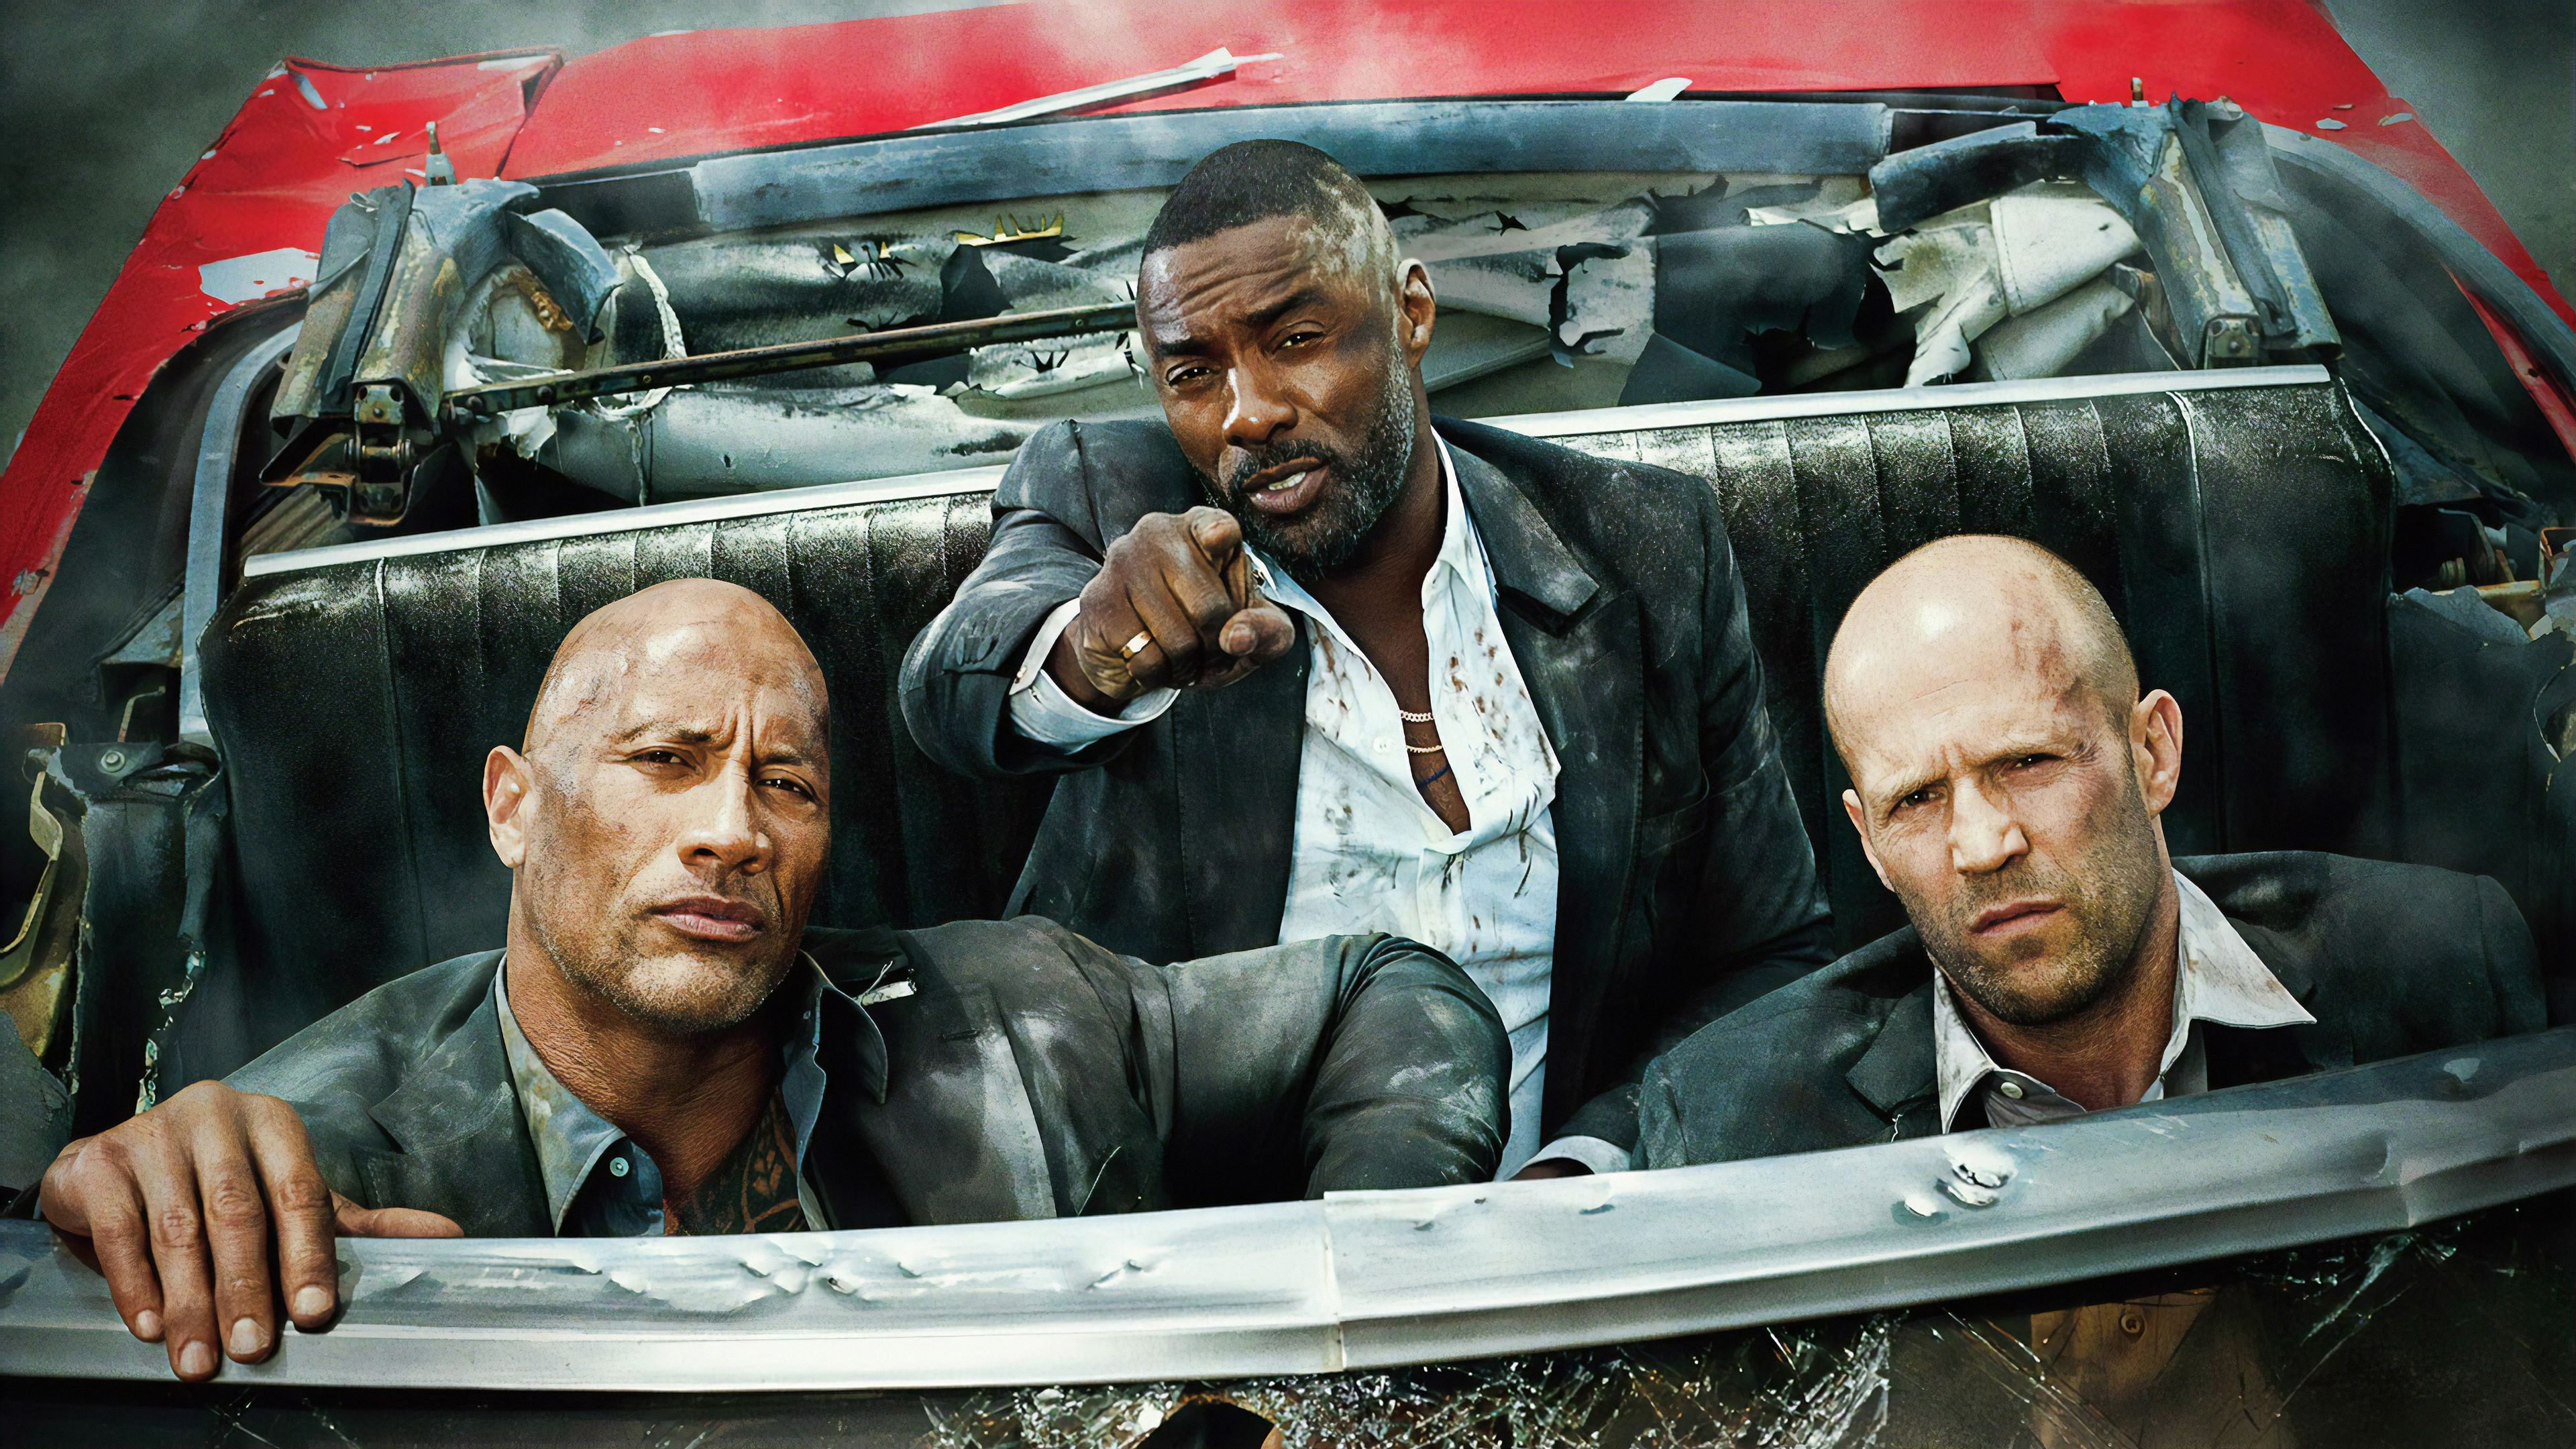 Hobbs And Shaw Ew 2019 Movies Wallpapers Jason Statham Wallpapers Hobbs And Shaw Wallpapers Hd Wallpapers Dwa Fast And Furious Dwayne Johnson Jason Statham